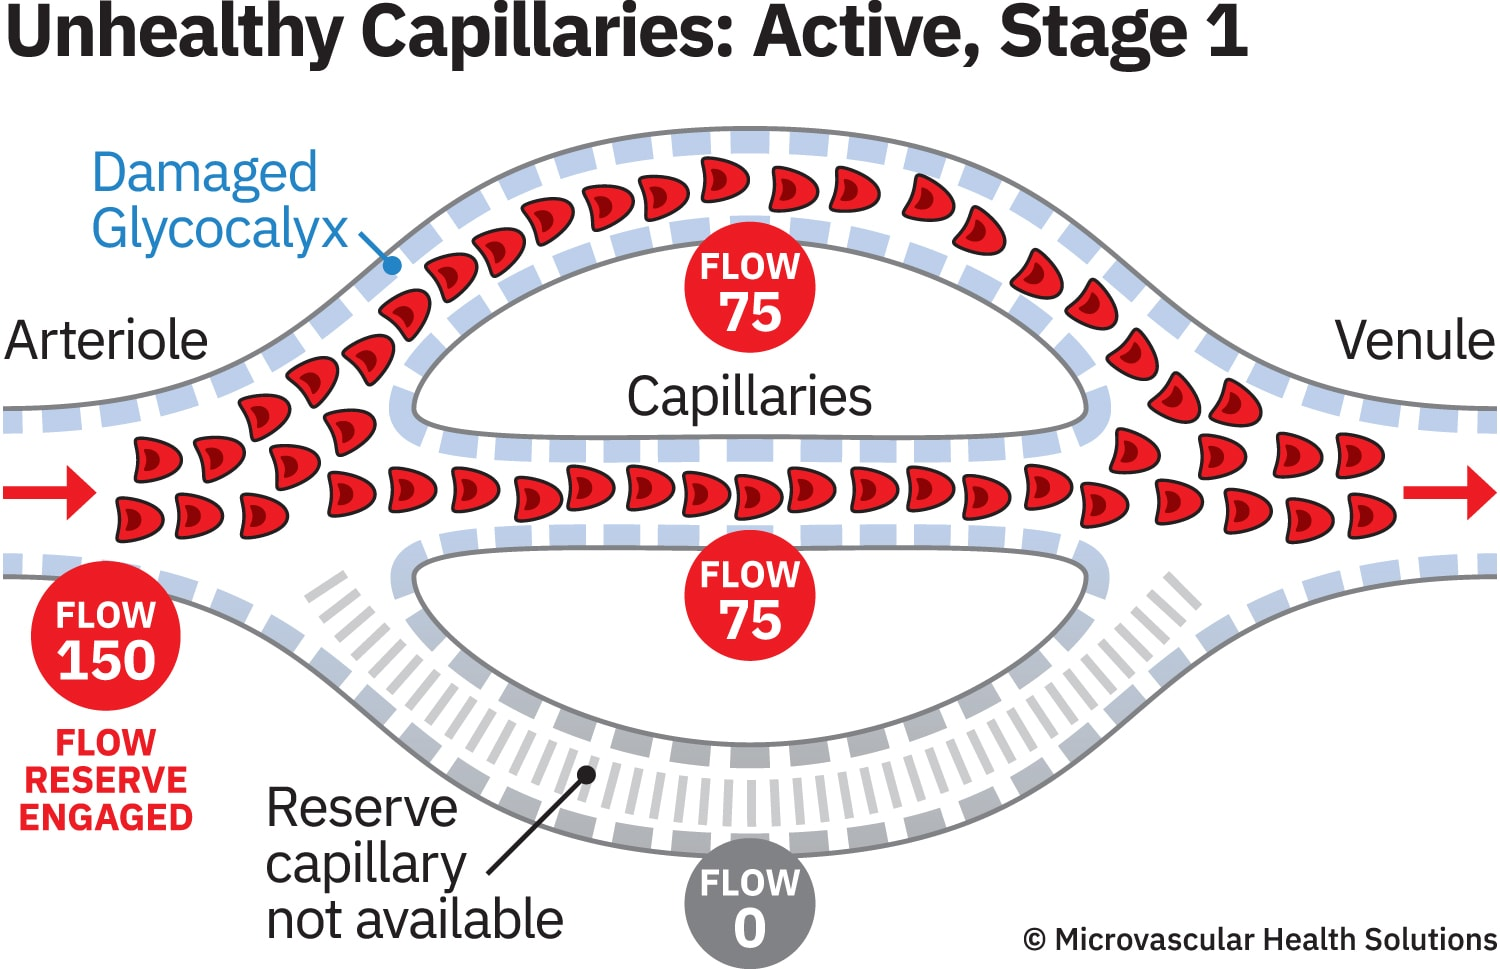 cap-unhealthy-active-stage1-MHS-1500